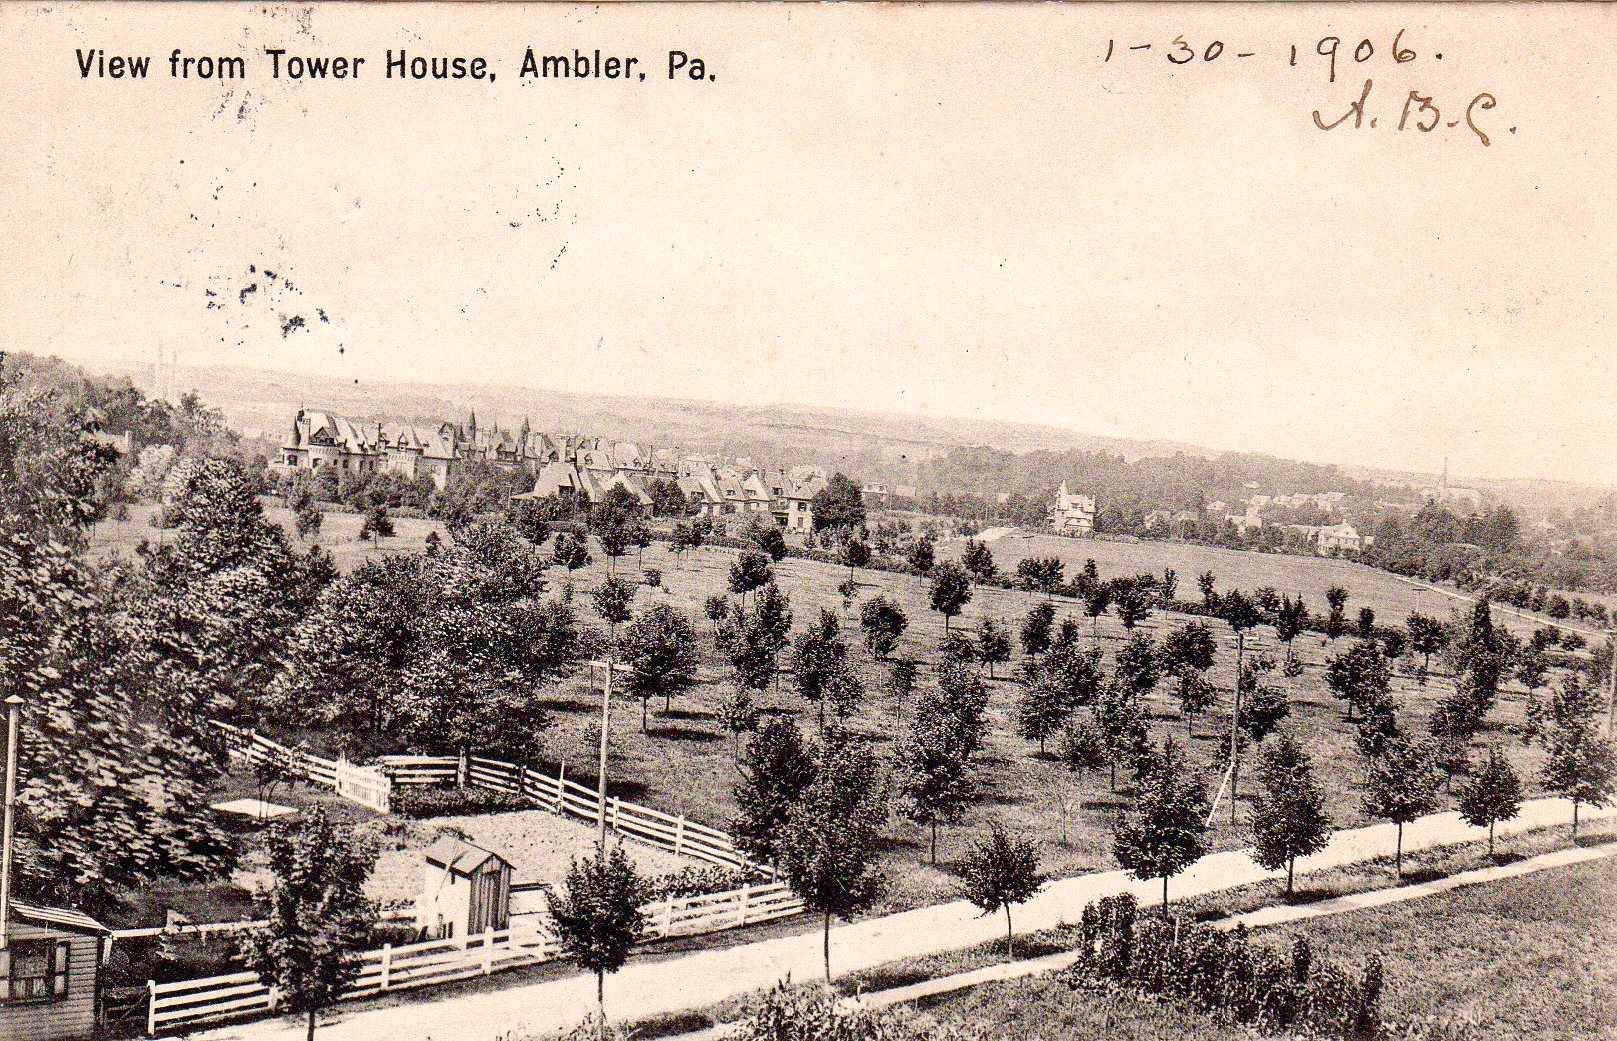 Post Card Collection (E Simon)_2682_43_View from tower House, Ambler, Pa_30 Jan 1906